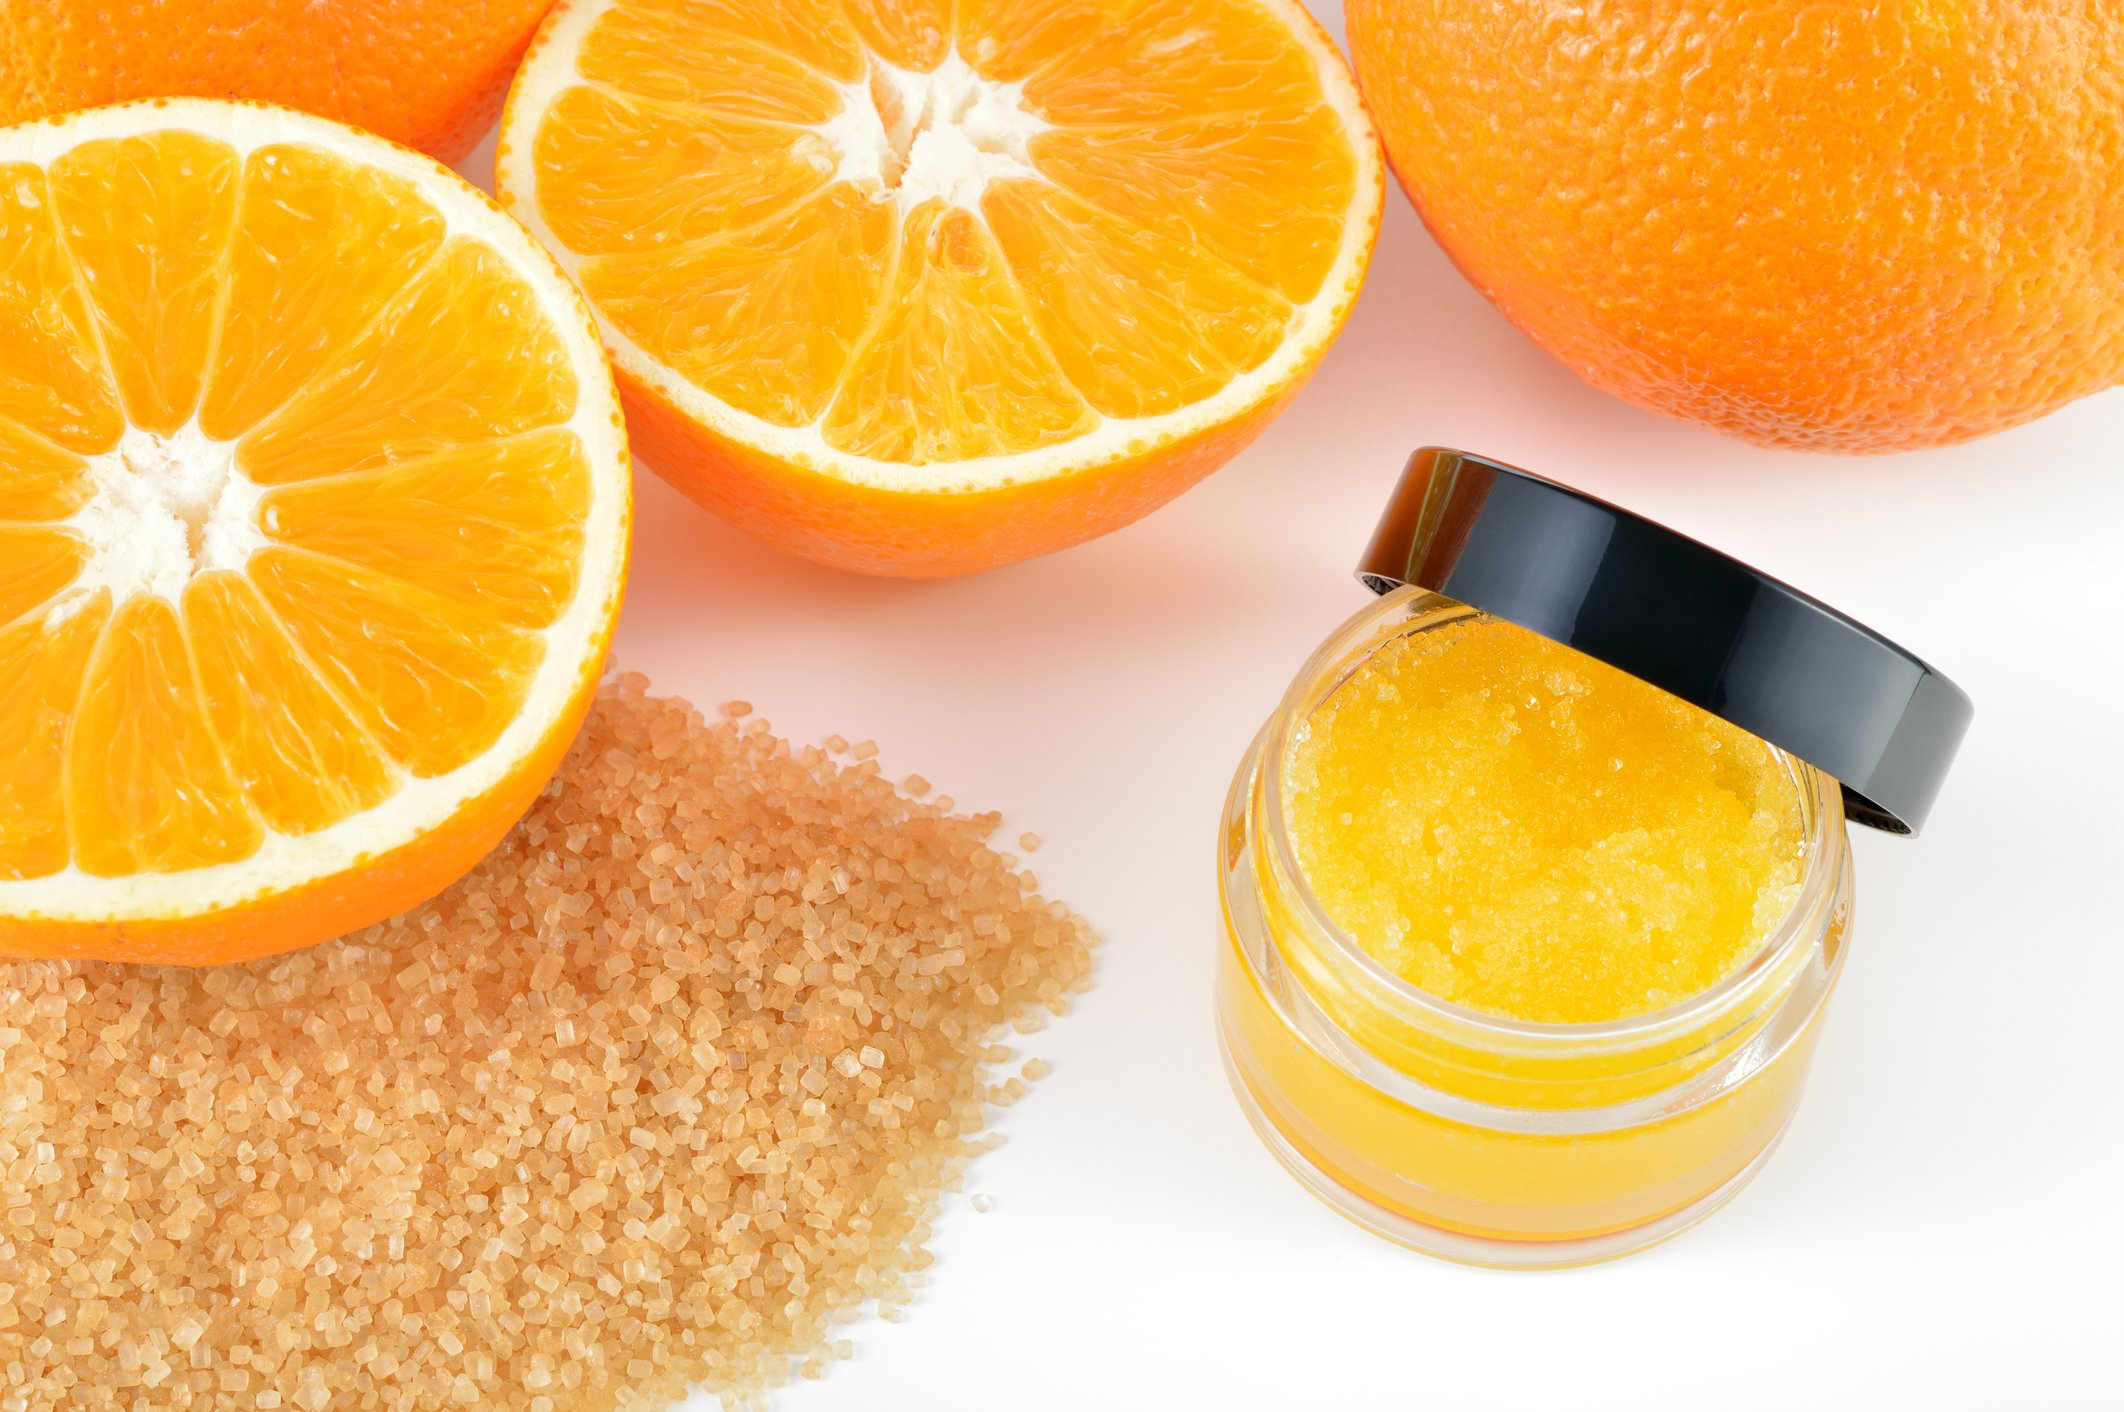 Natural orange sugar lip scrub on white background with reflection. Orange cosmetic in a glass jar with oranges in a background.